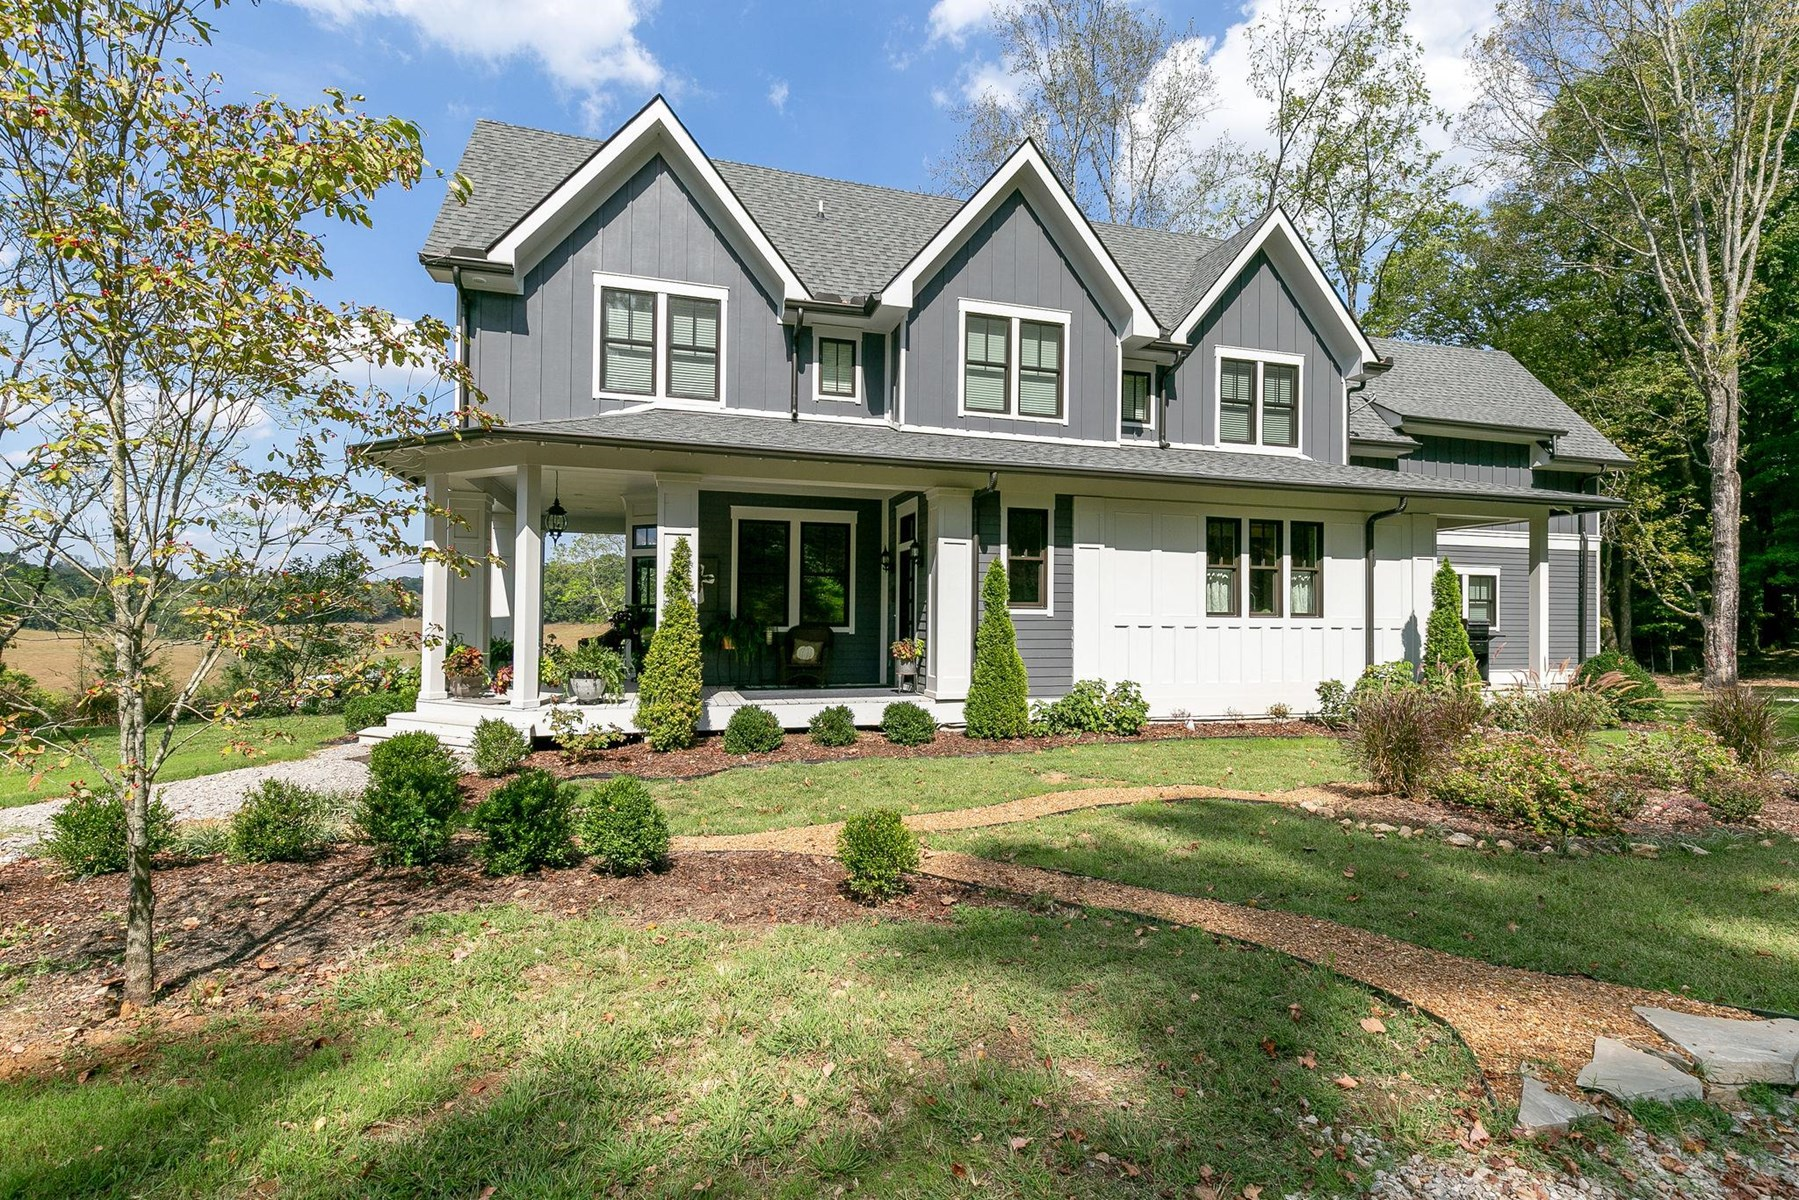 A Showcase of Country Style For Sale in Santa Fe, TN!!